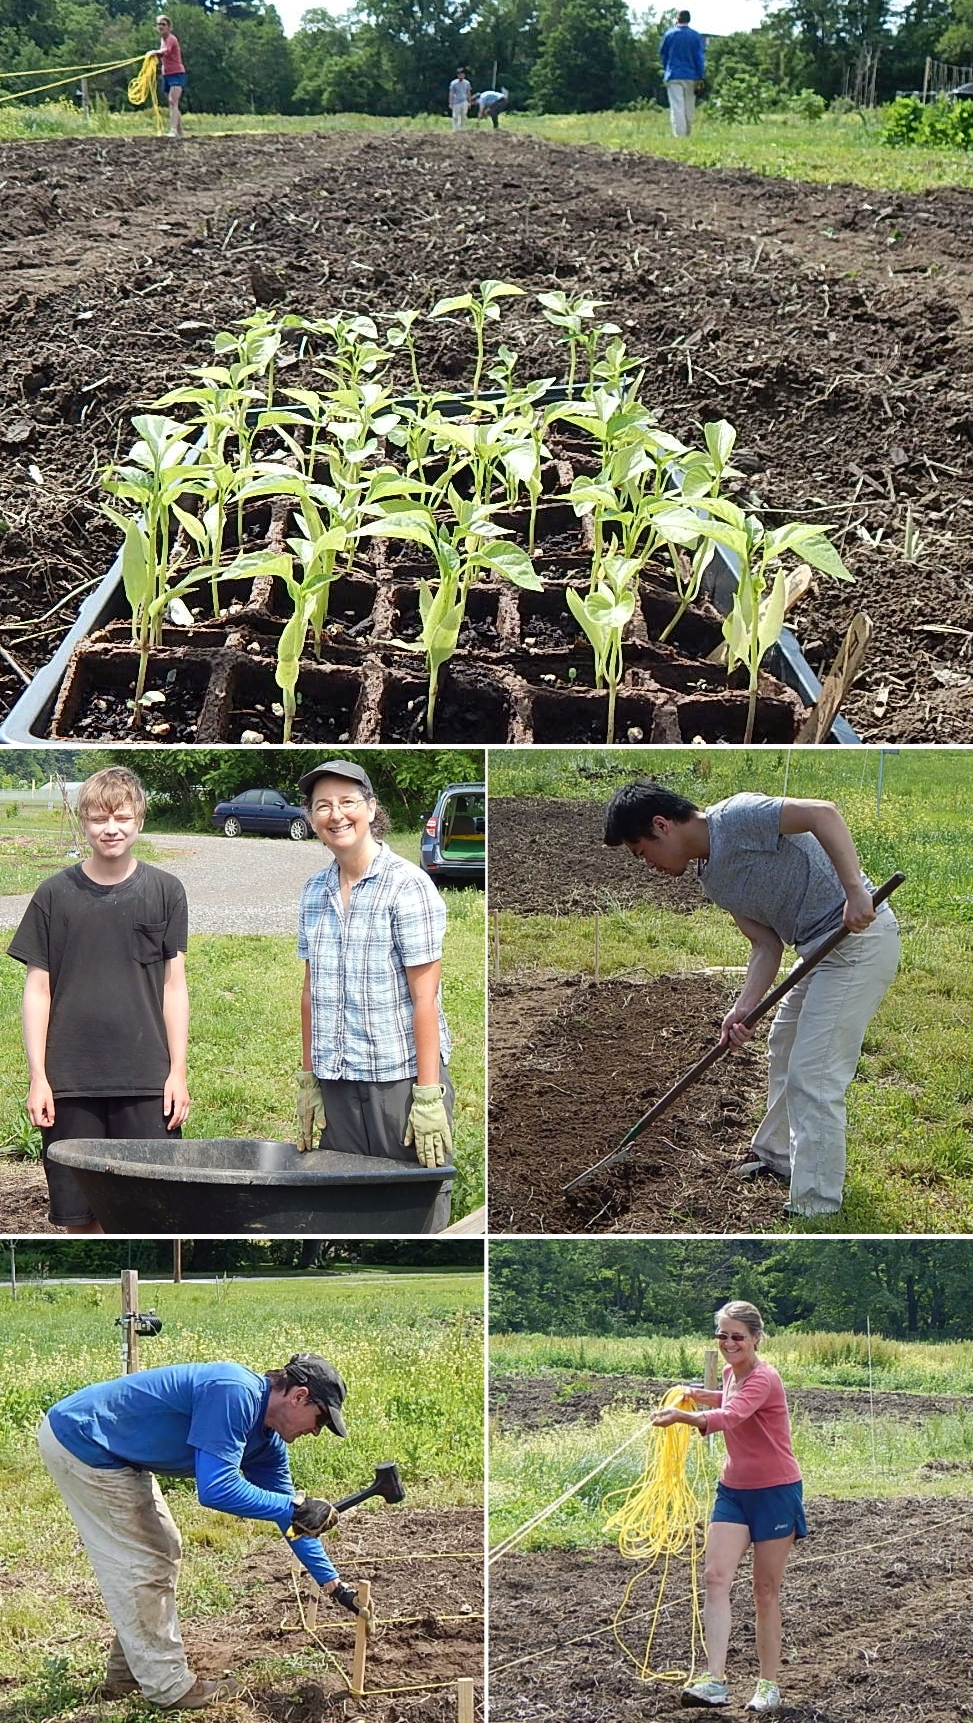 4,000 Square Feet Of New Ground, With Volunteers Growing Food For Soup Kitchens.